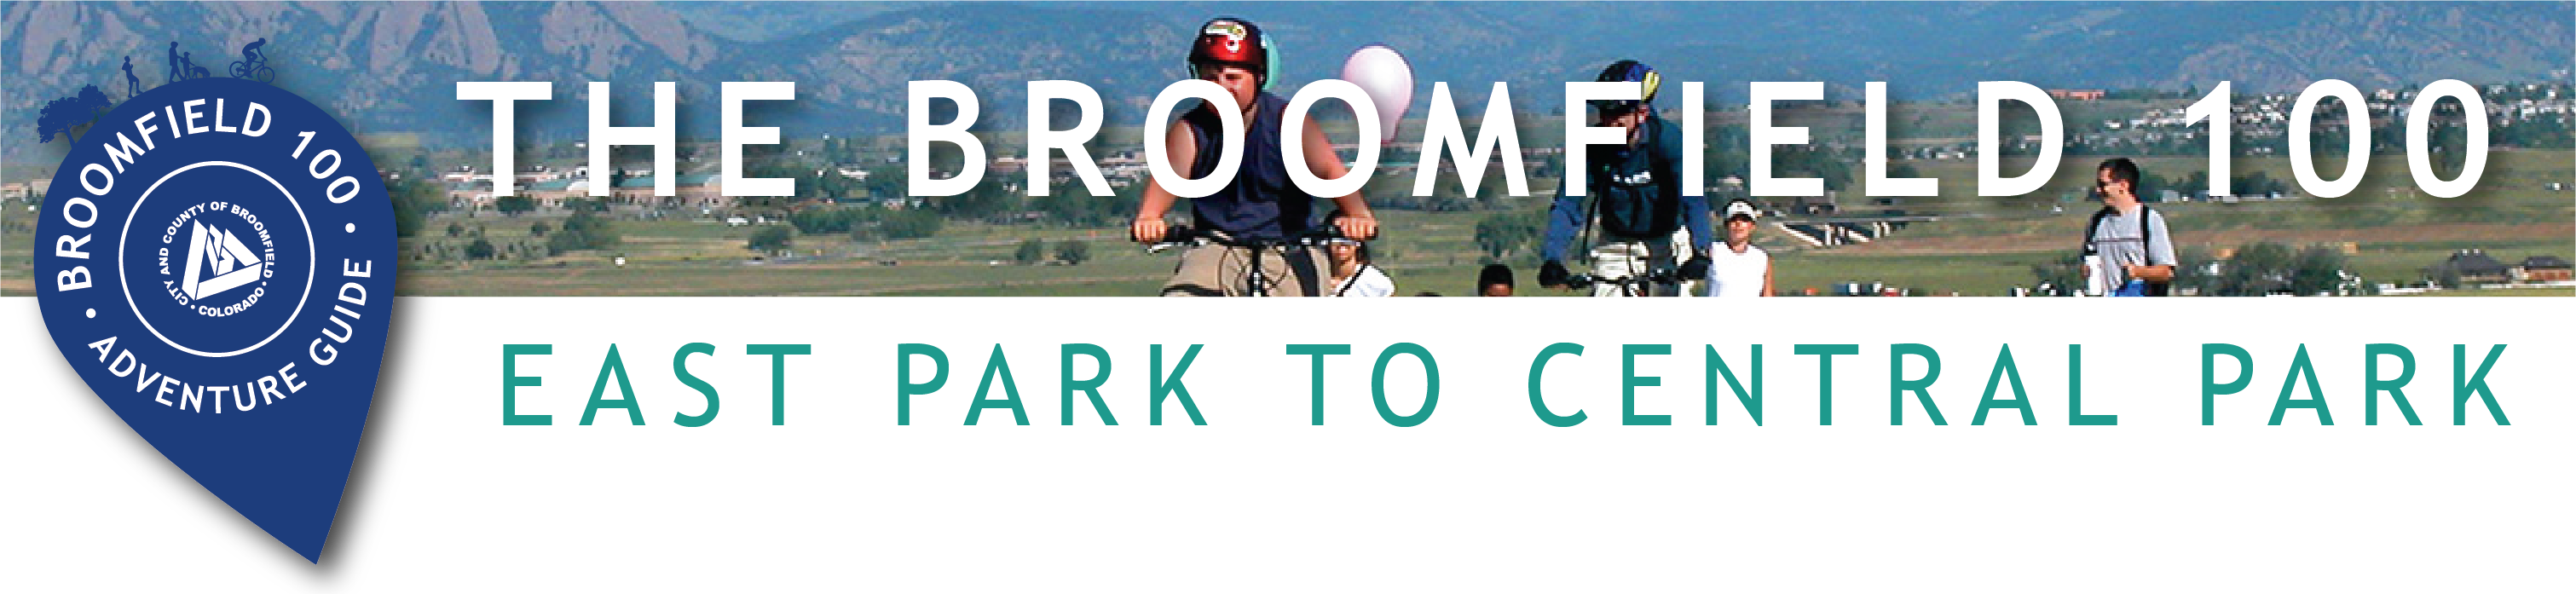 2019 Broomfield100 web banners_east park to central park